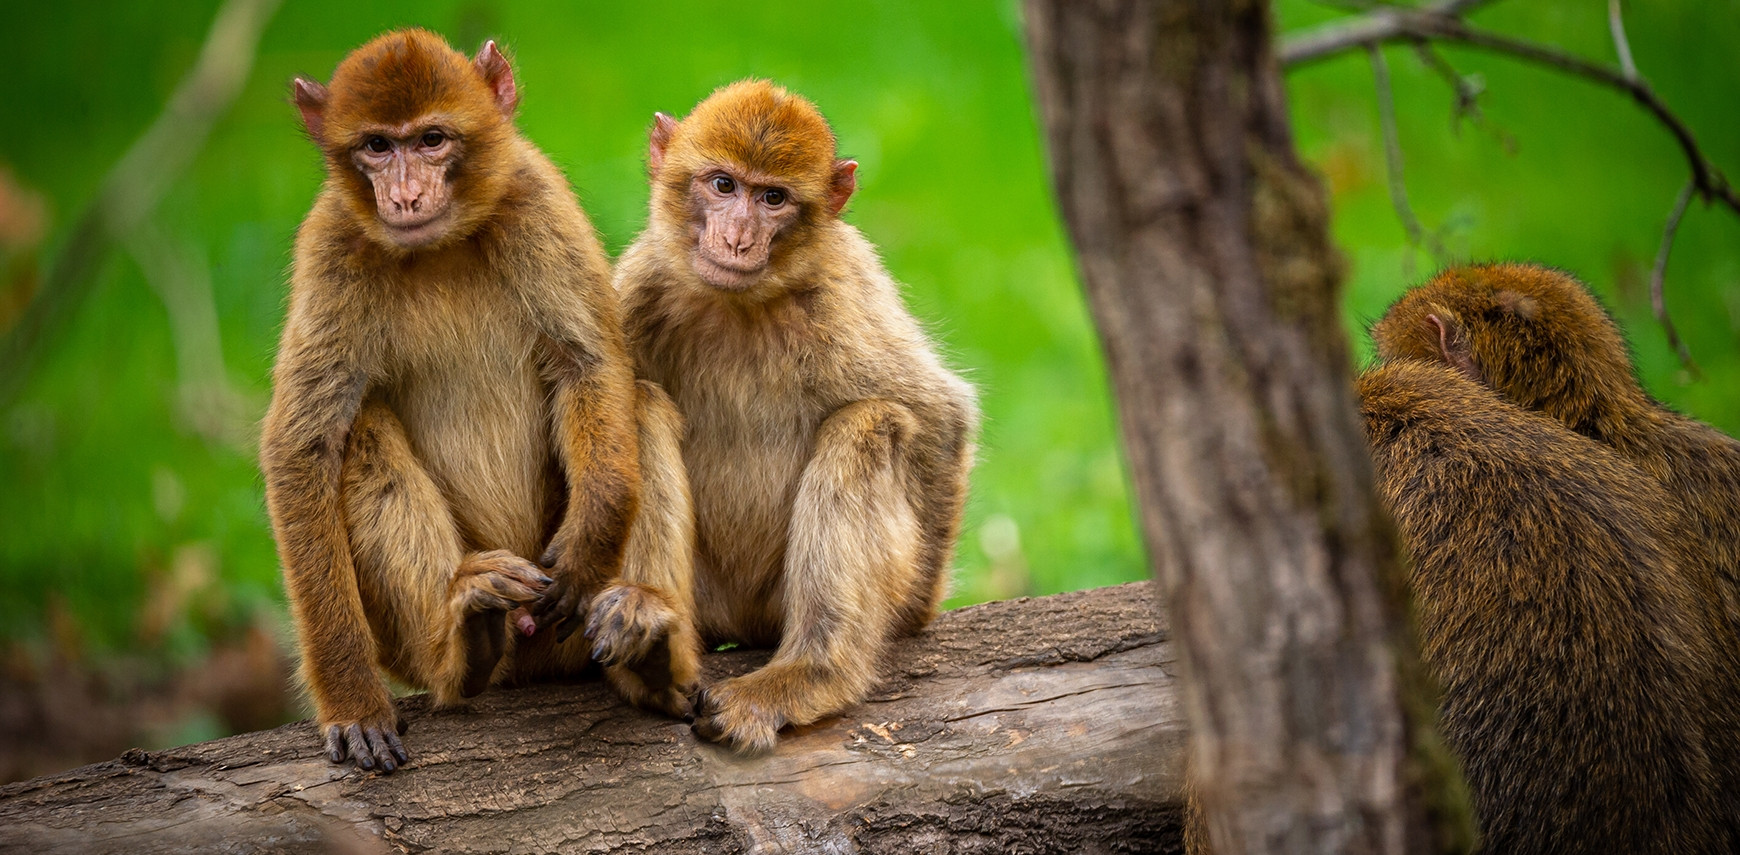 HAPPY BARBARY MACAQUES